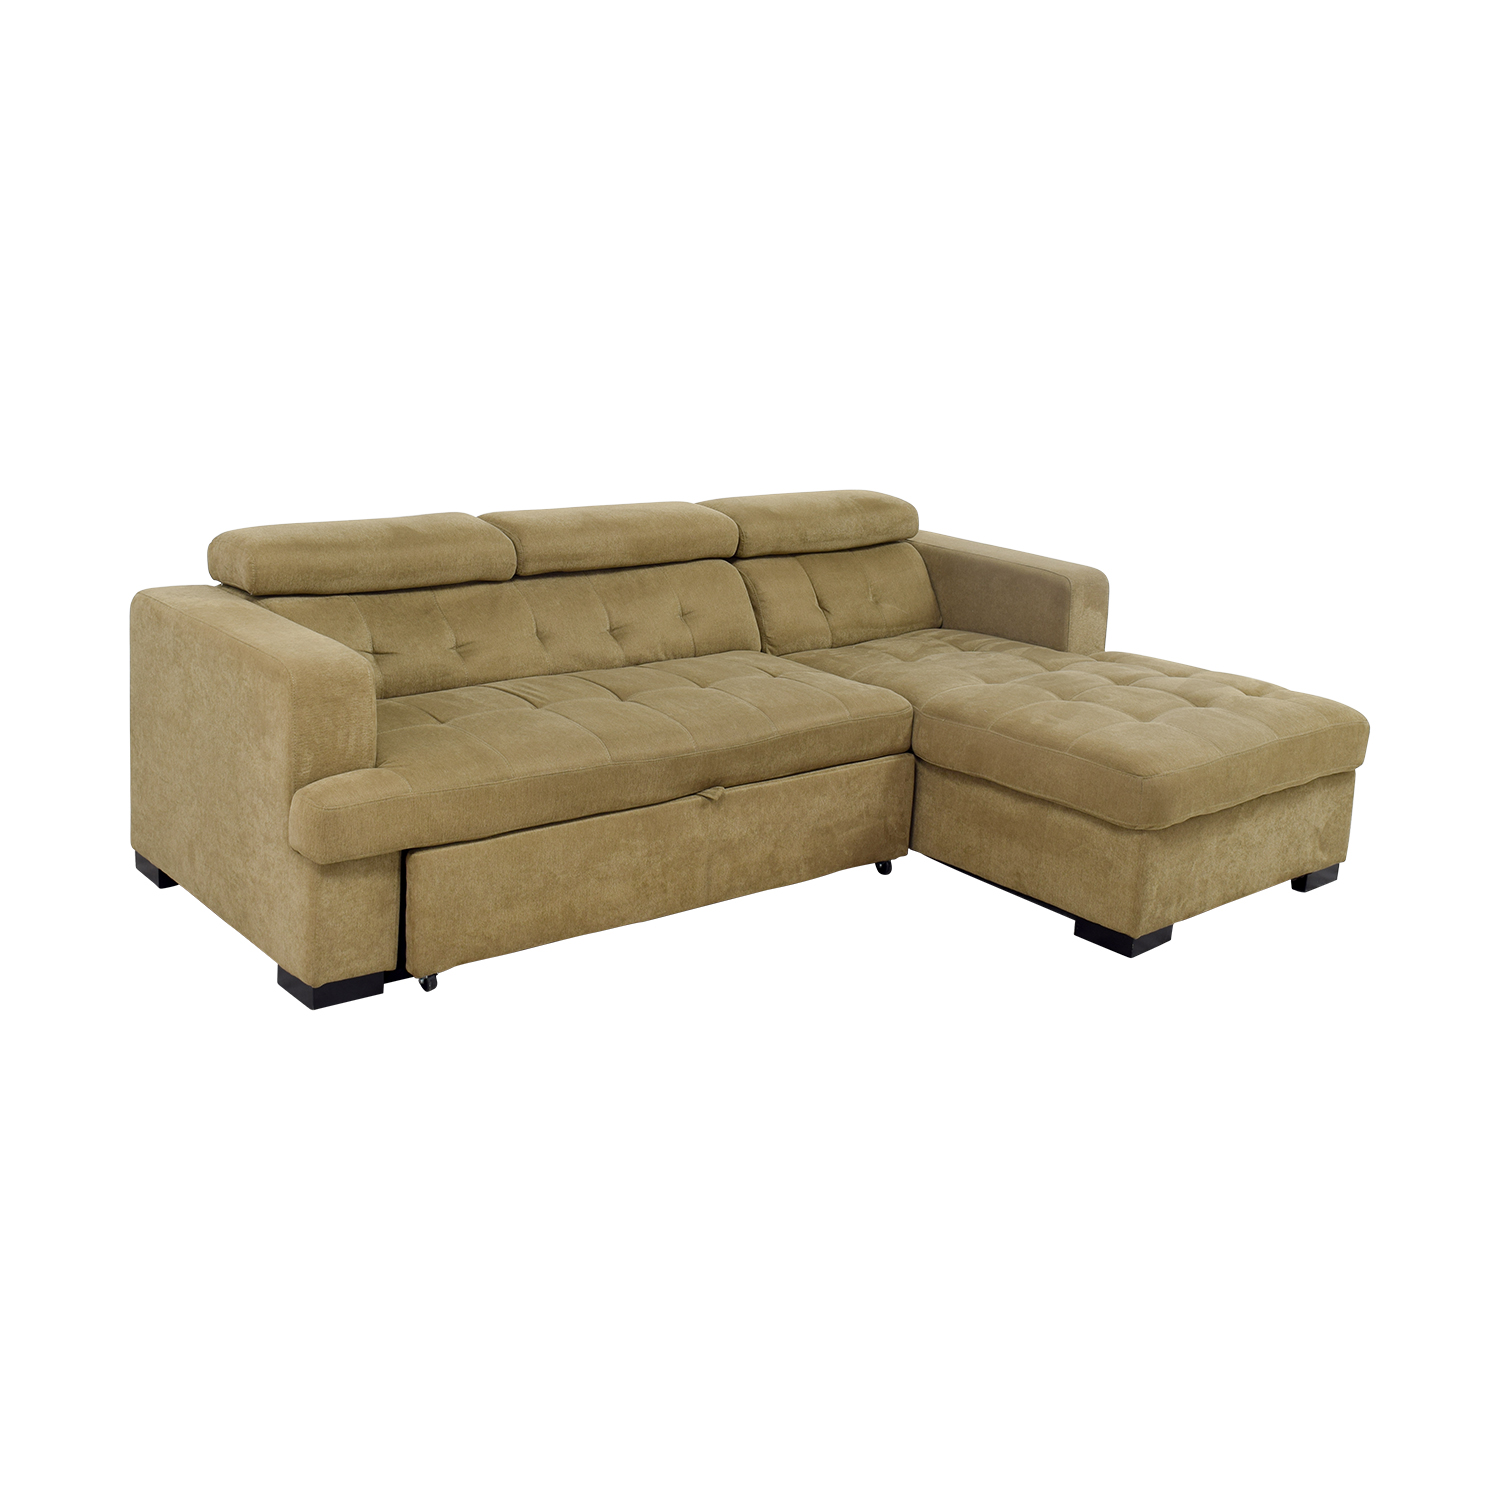 bobs furniture sleeper sofa single set designs 59 off bob 39s gold chaise